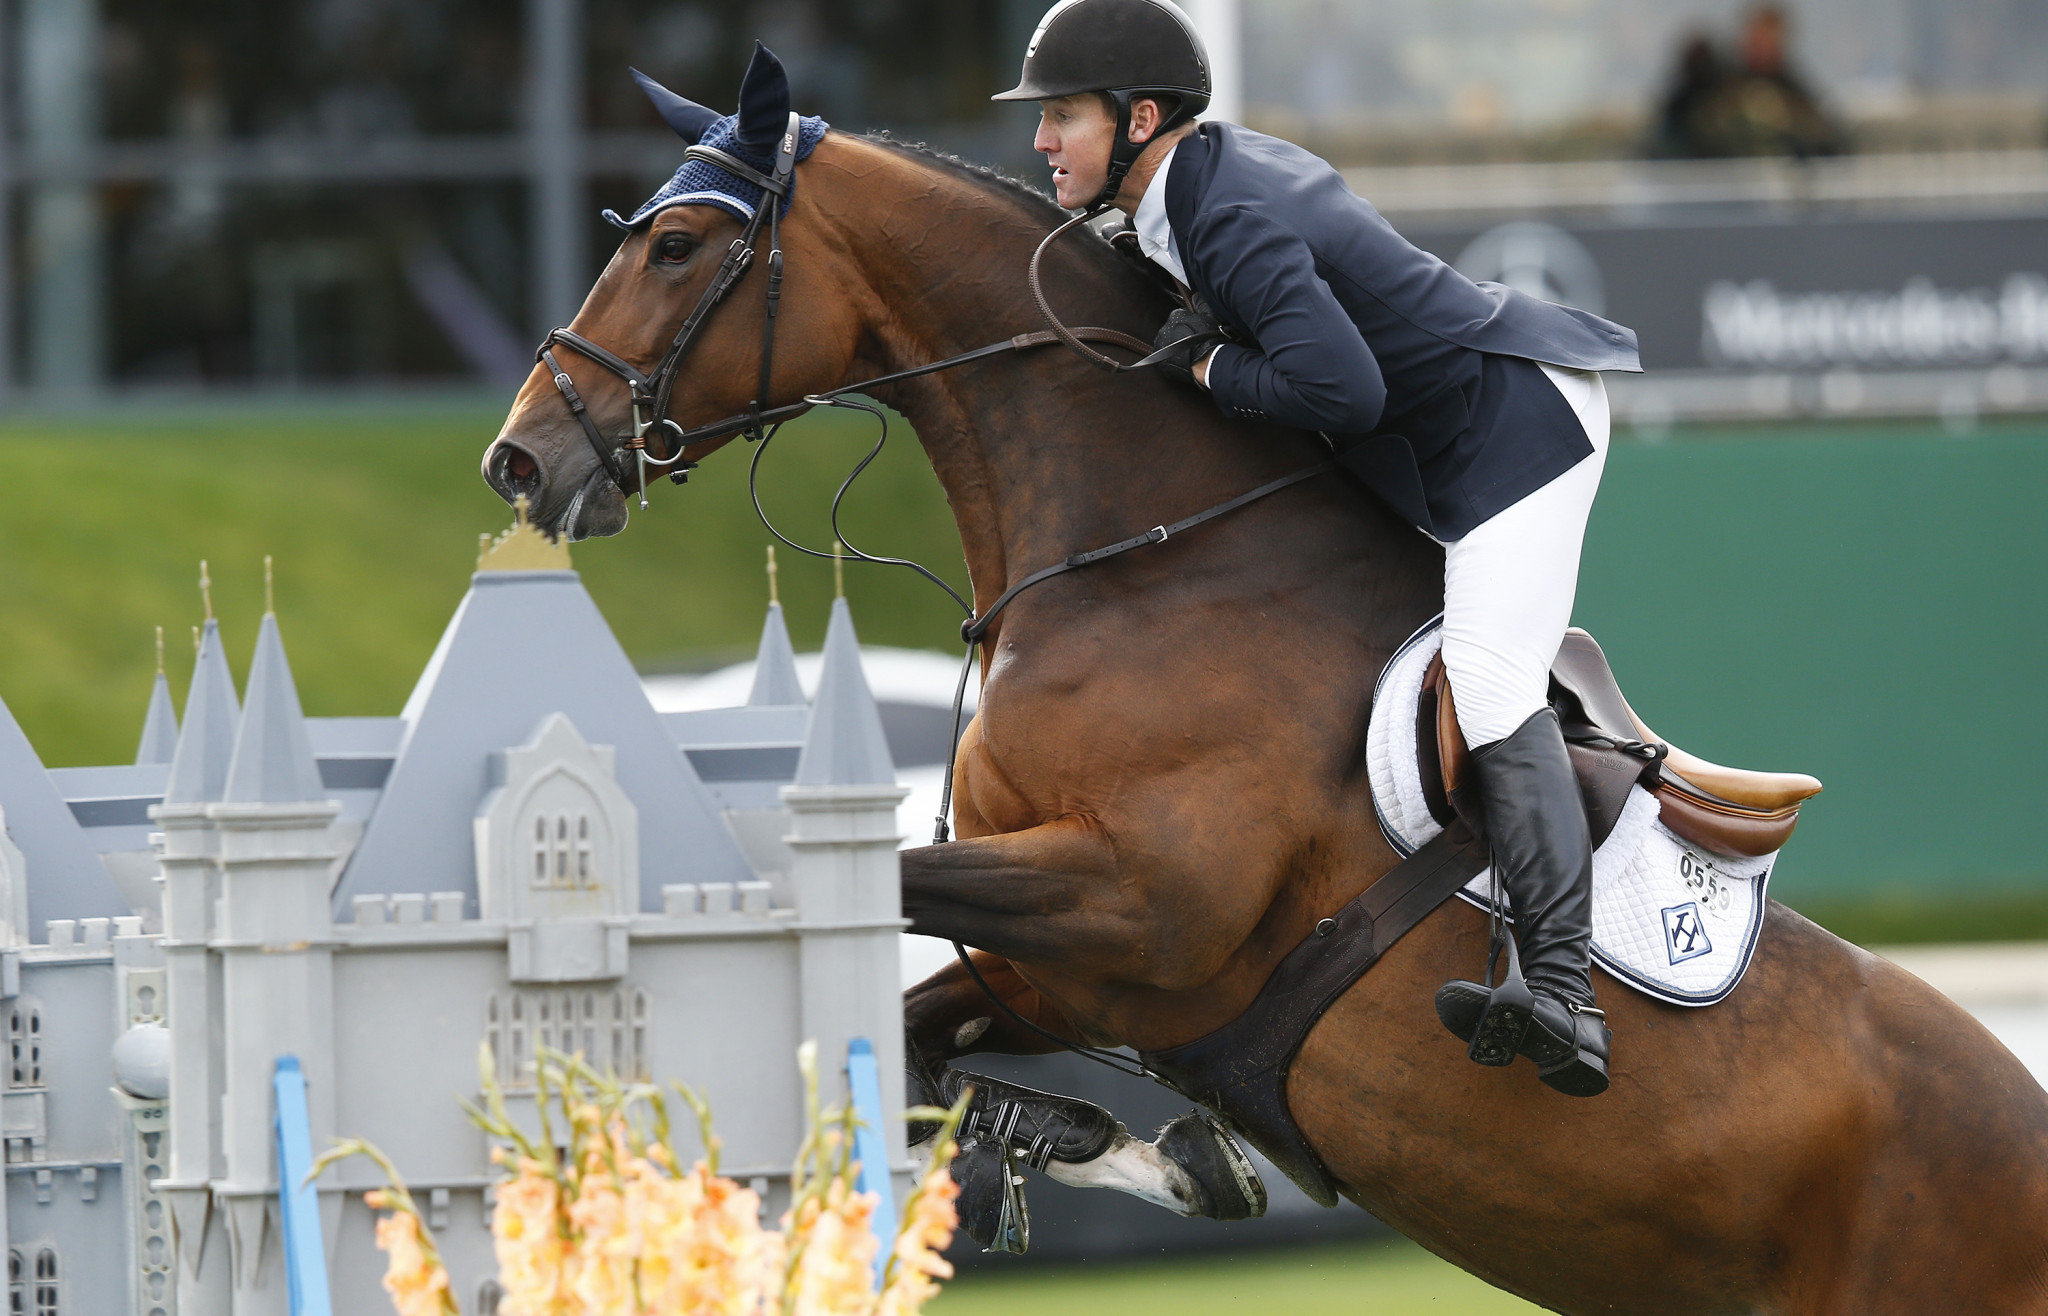 McLain Ward will be going for gold in the jumping final in Paris ©Getty Images